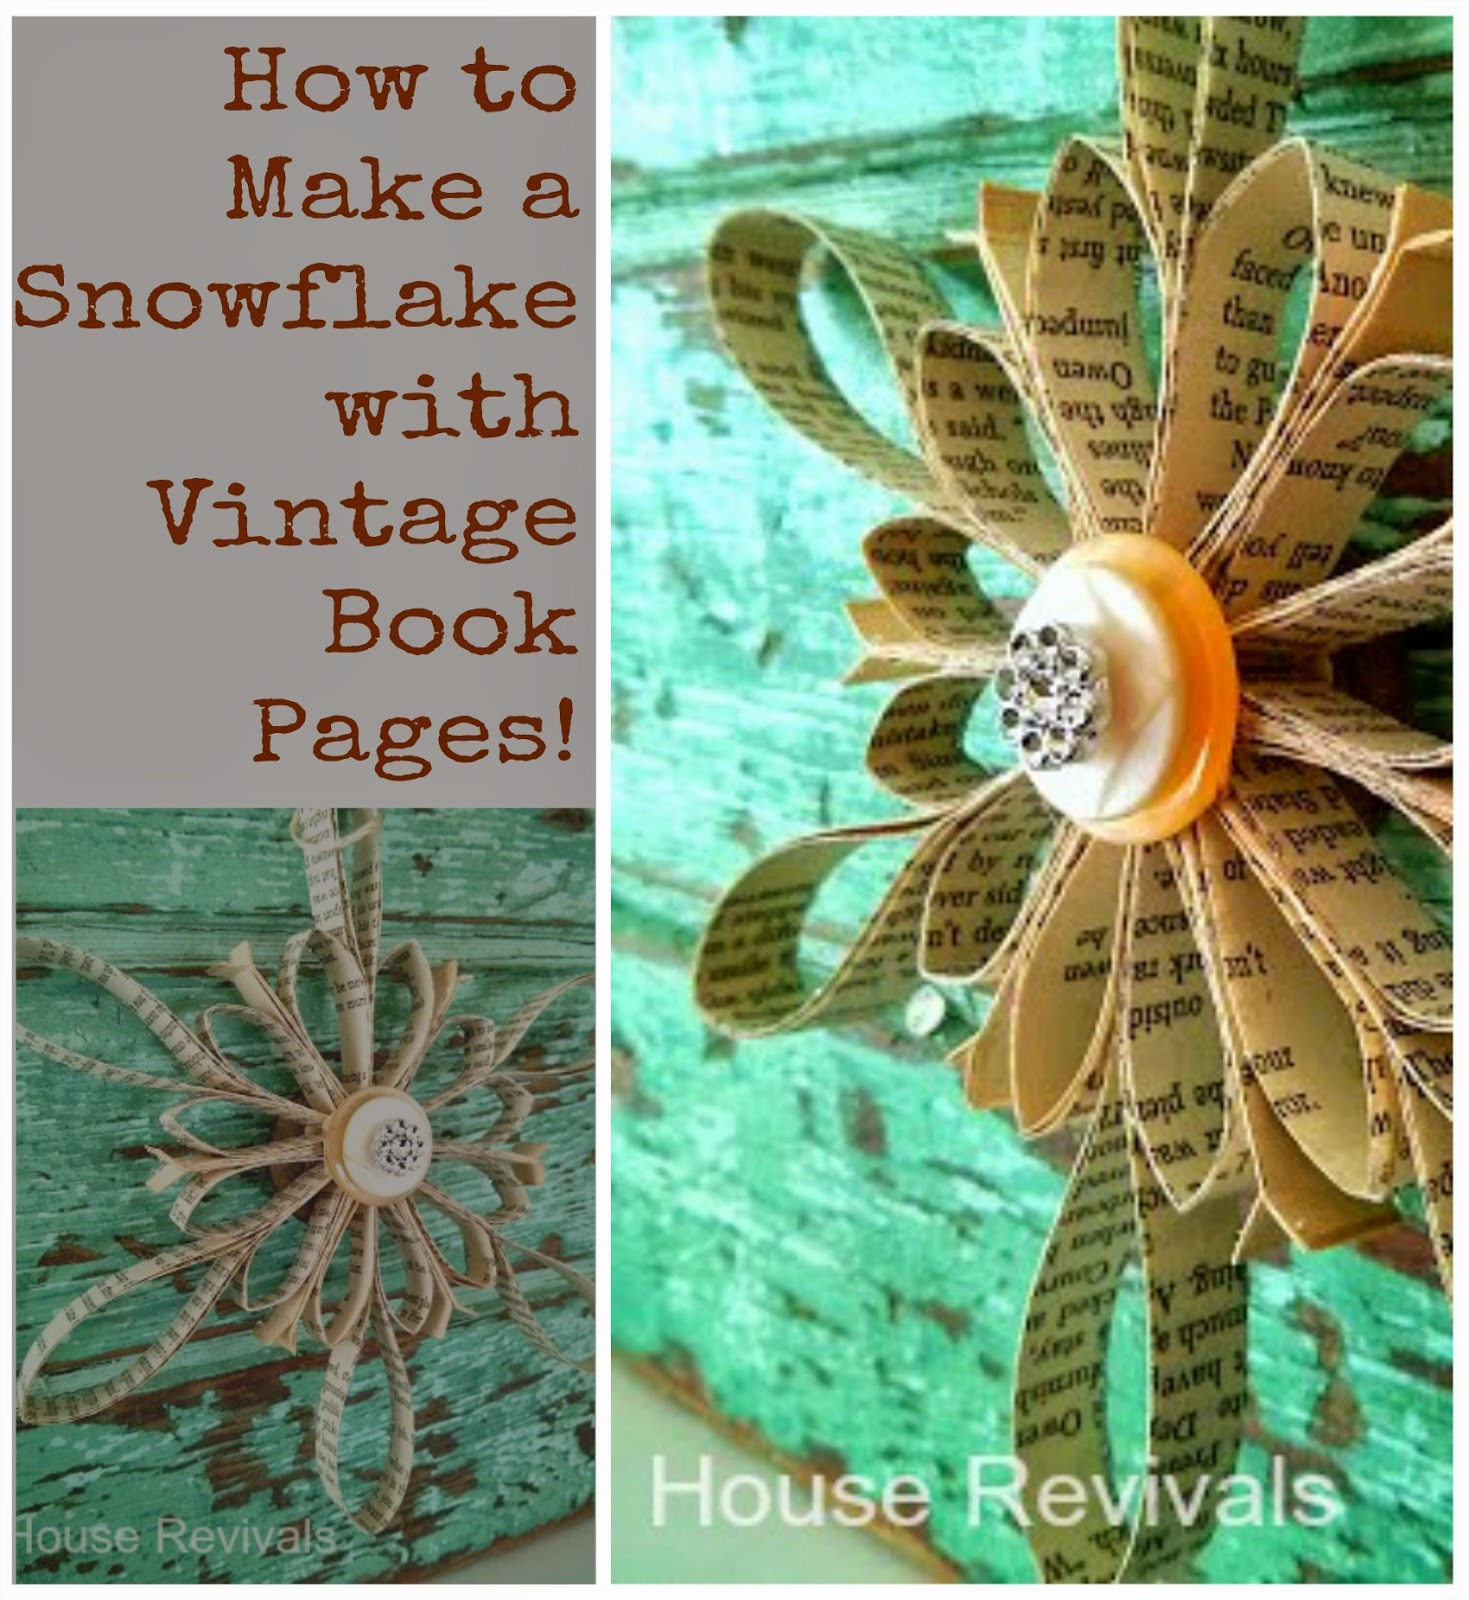 Make snowflake ornaments - Here Is A Simple Way To Use Old Book Pages And Buttons From Your Stash To Create Pretty Snowflake Ornaments